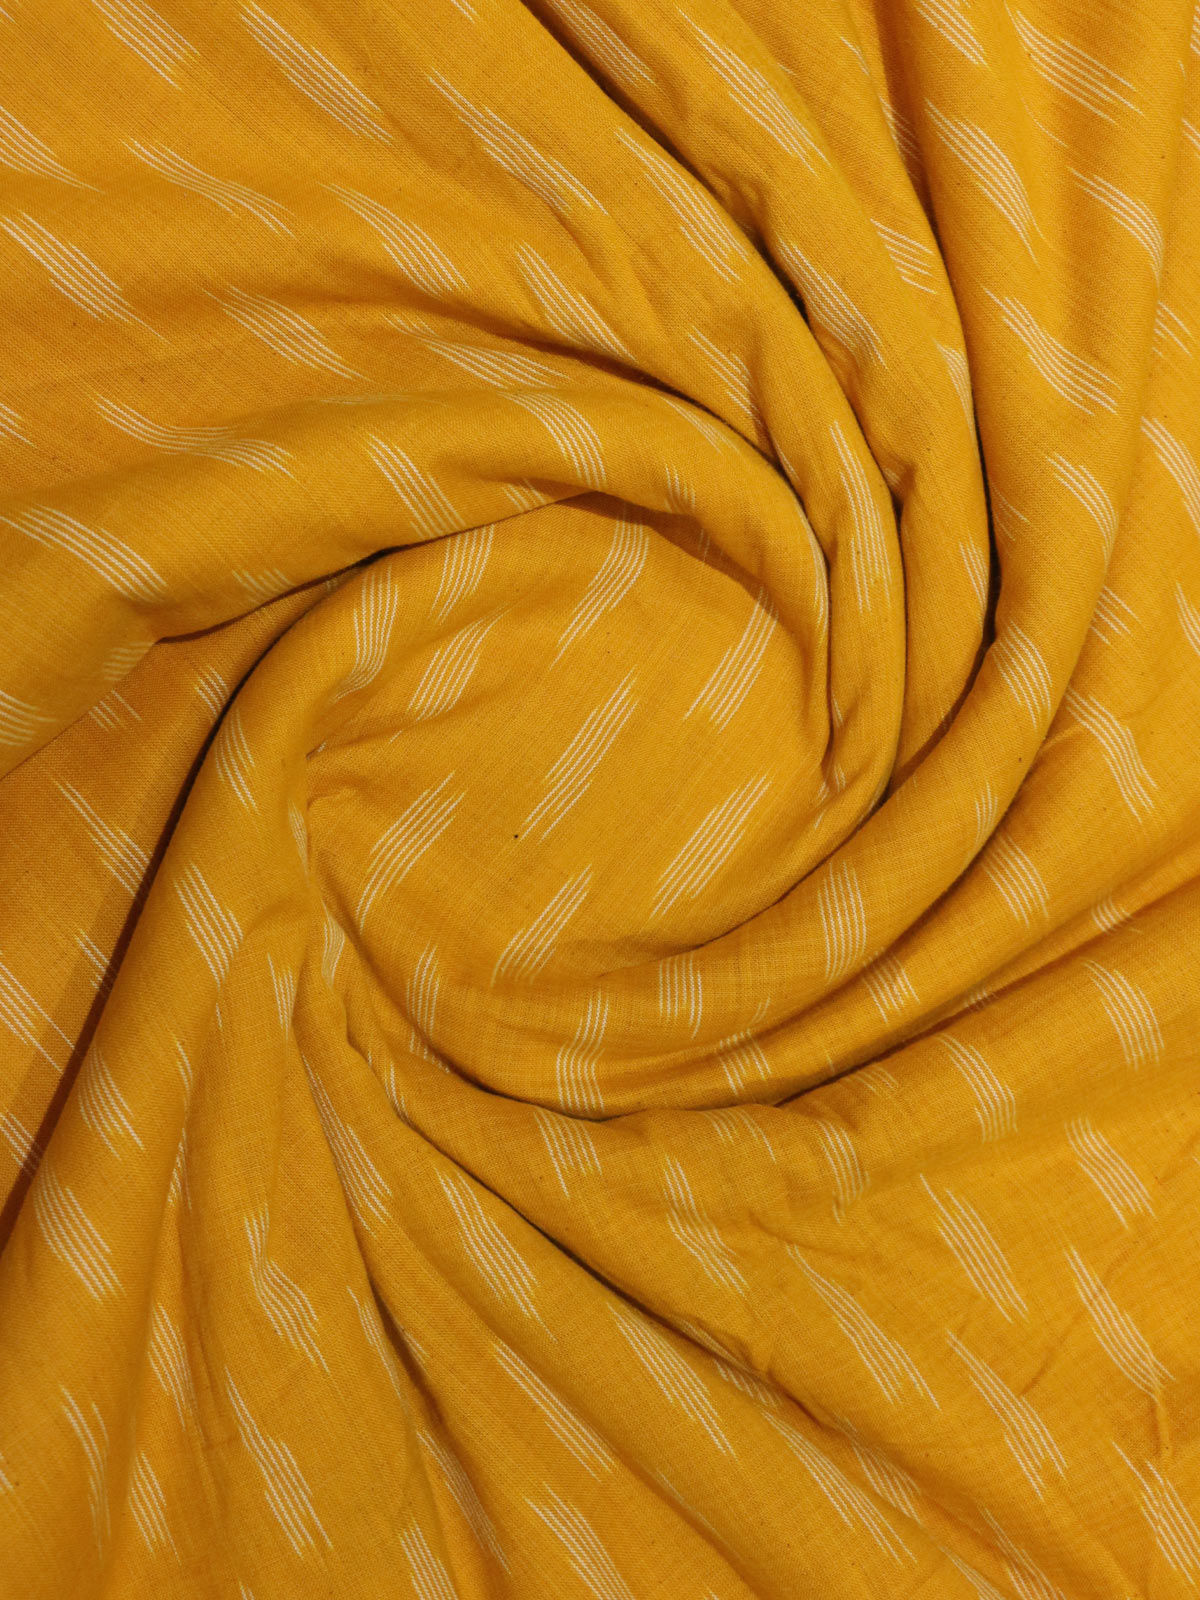 Mustard color ikat handloon cotton fabric